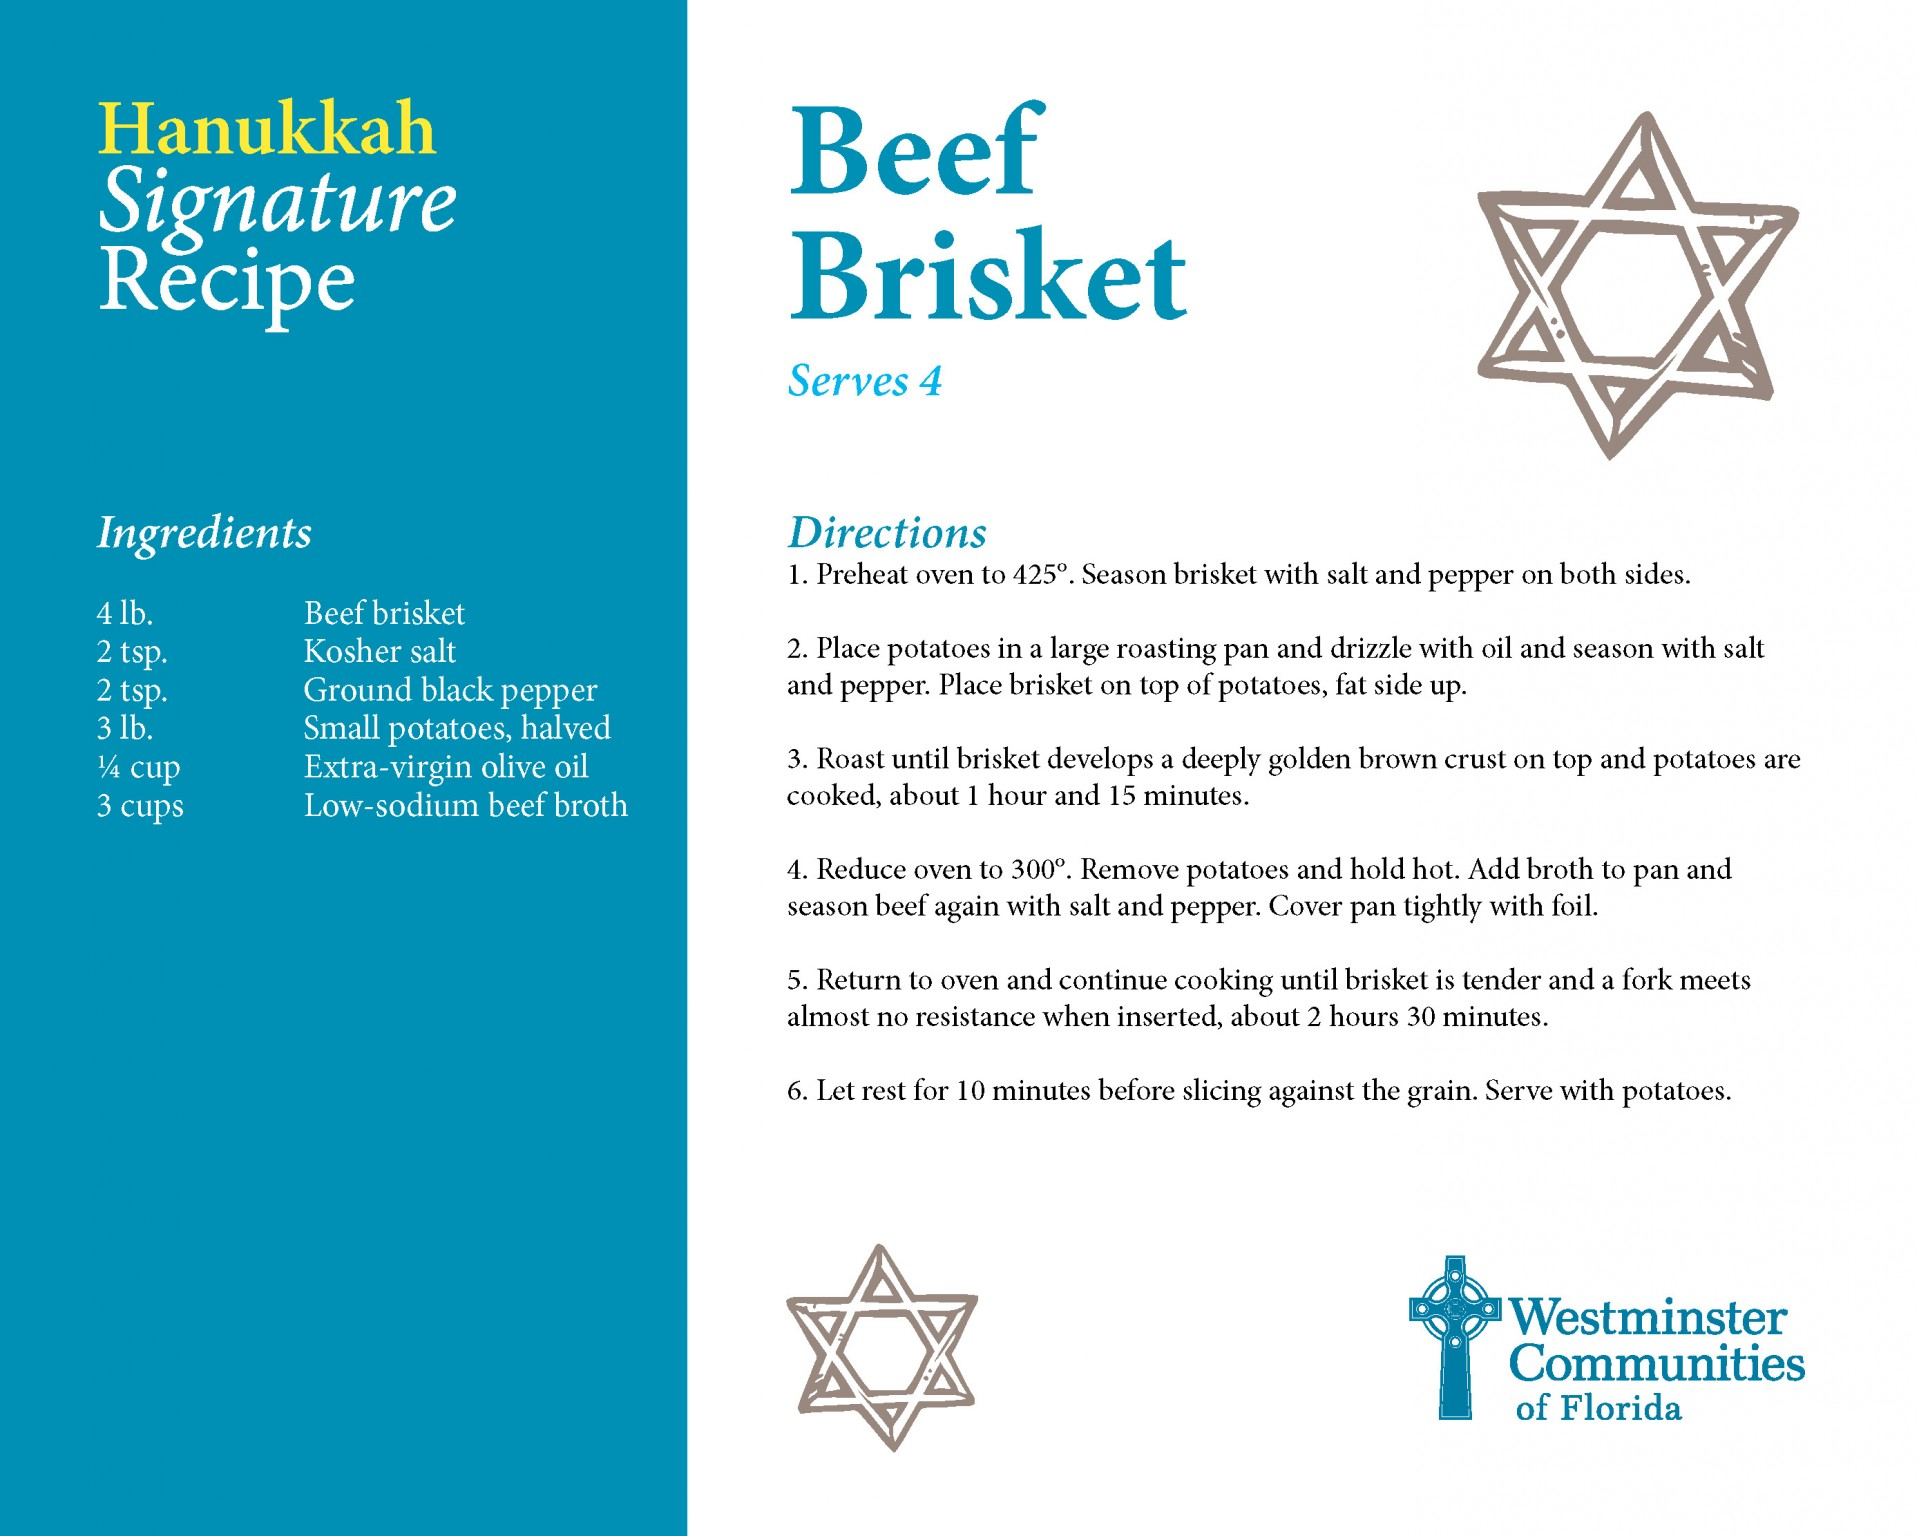 Signature Recipe for Beef Brisket